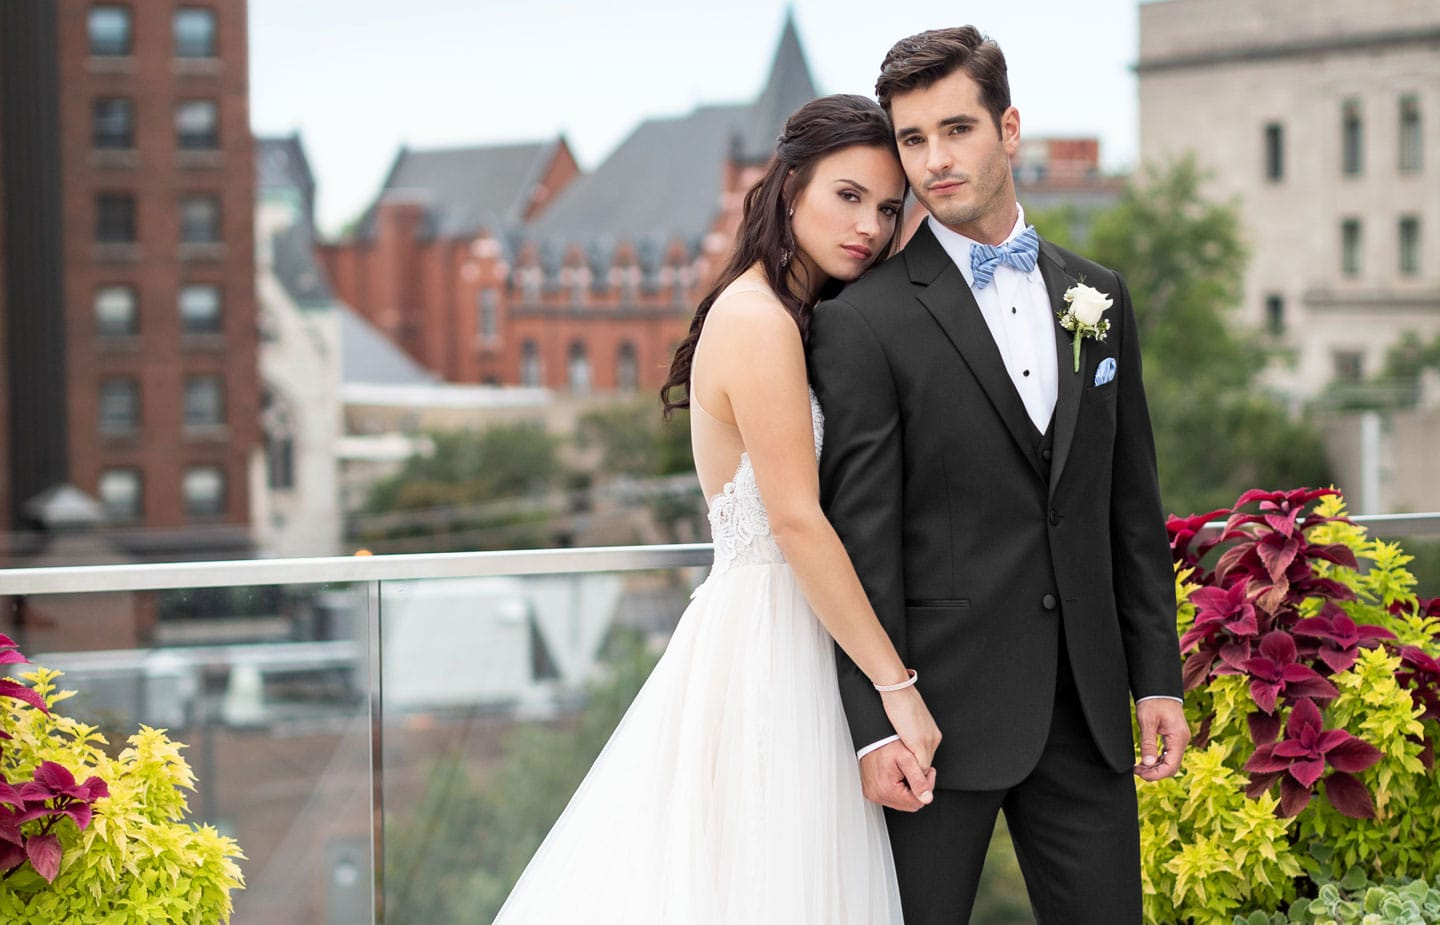 Tuxedo Rental in Snohomish, WA | Perfect Fit